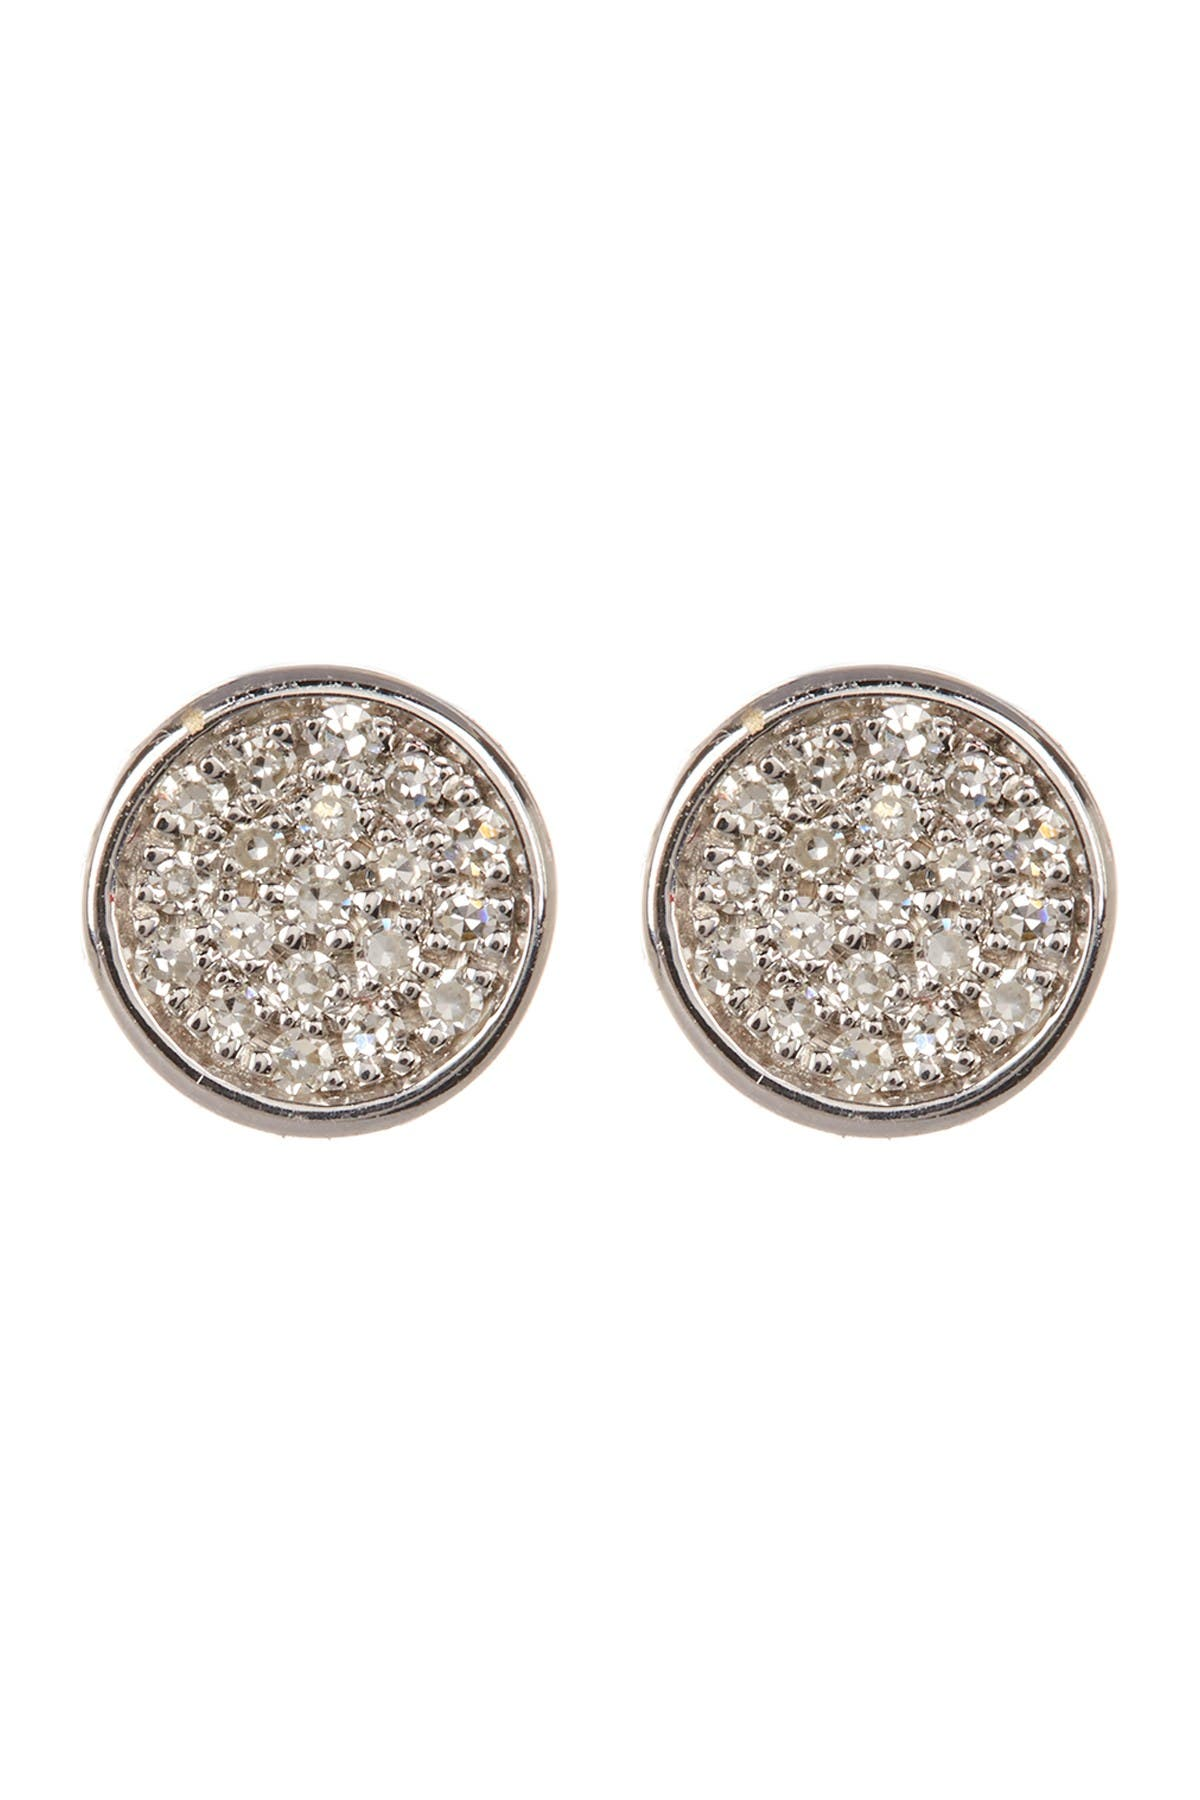 Image of Carriere Sterling Silver Pave Diamond Disc Stud Earrings - 0.11 ctw